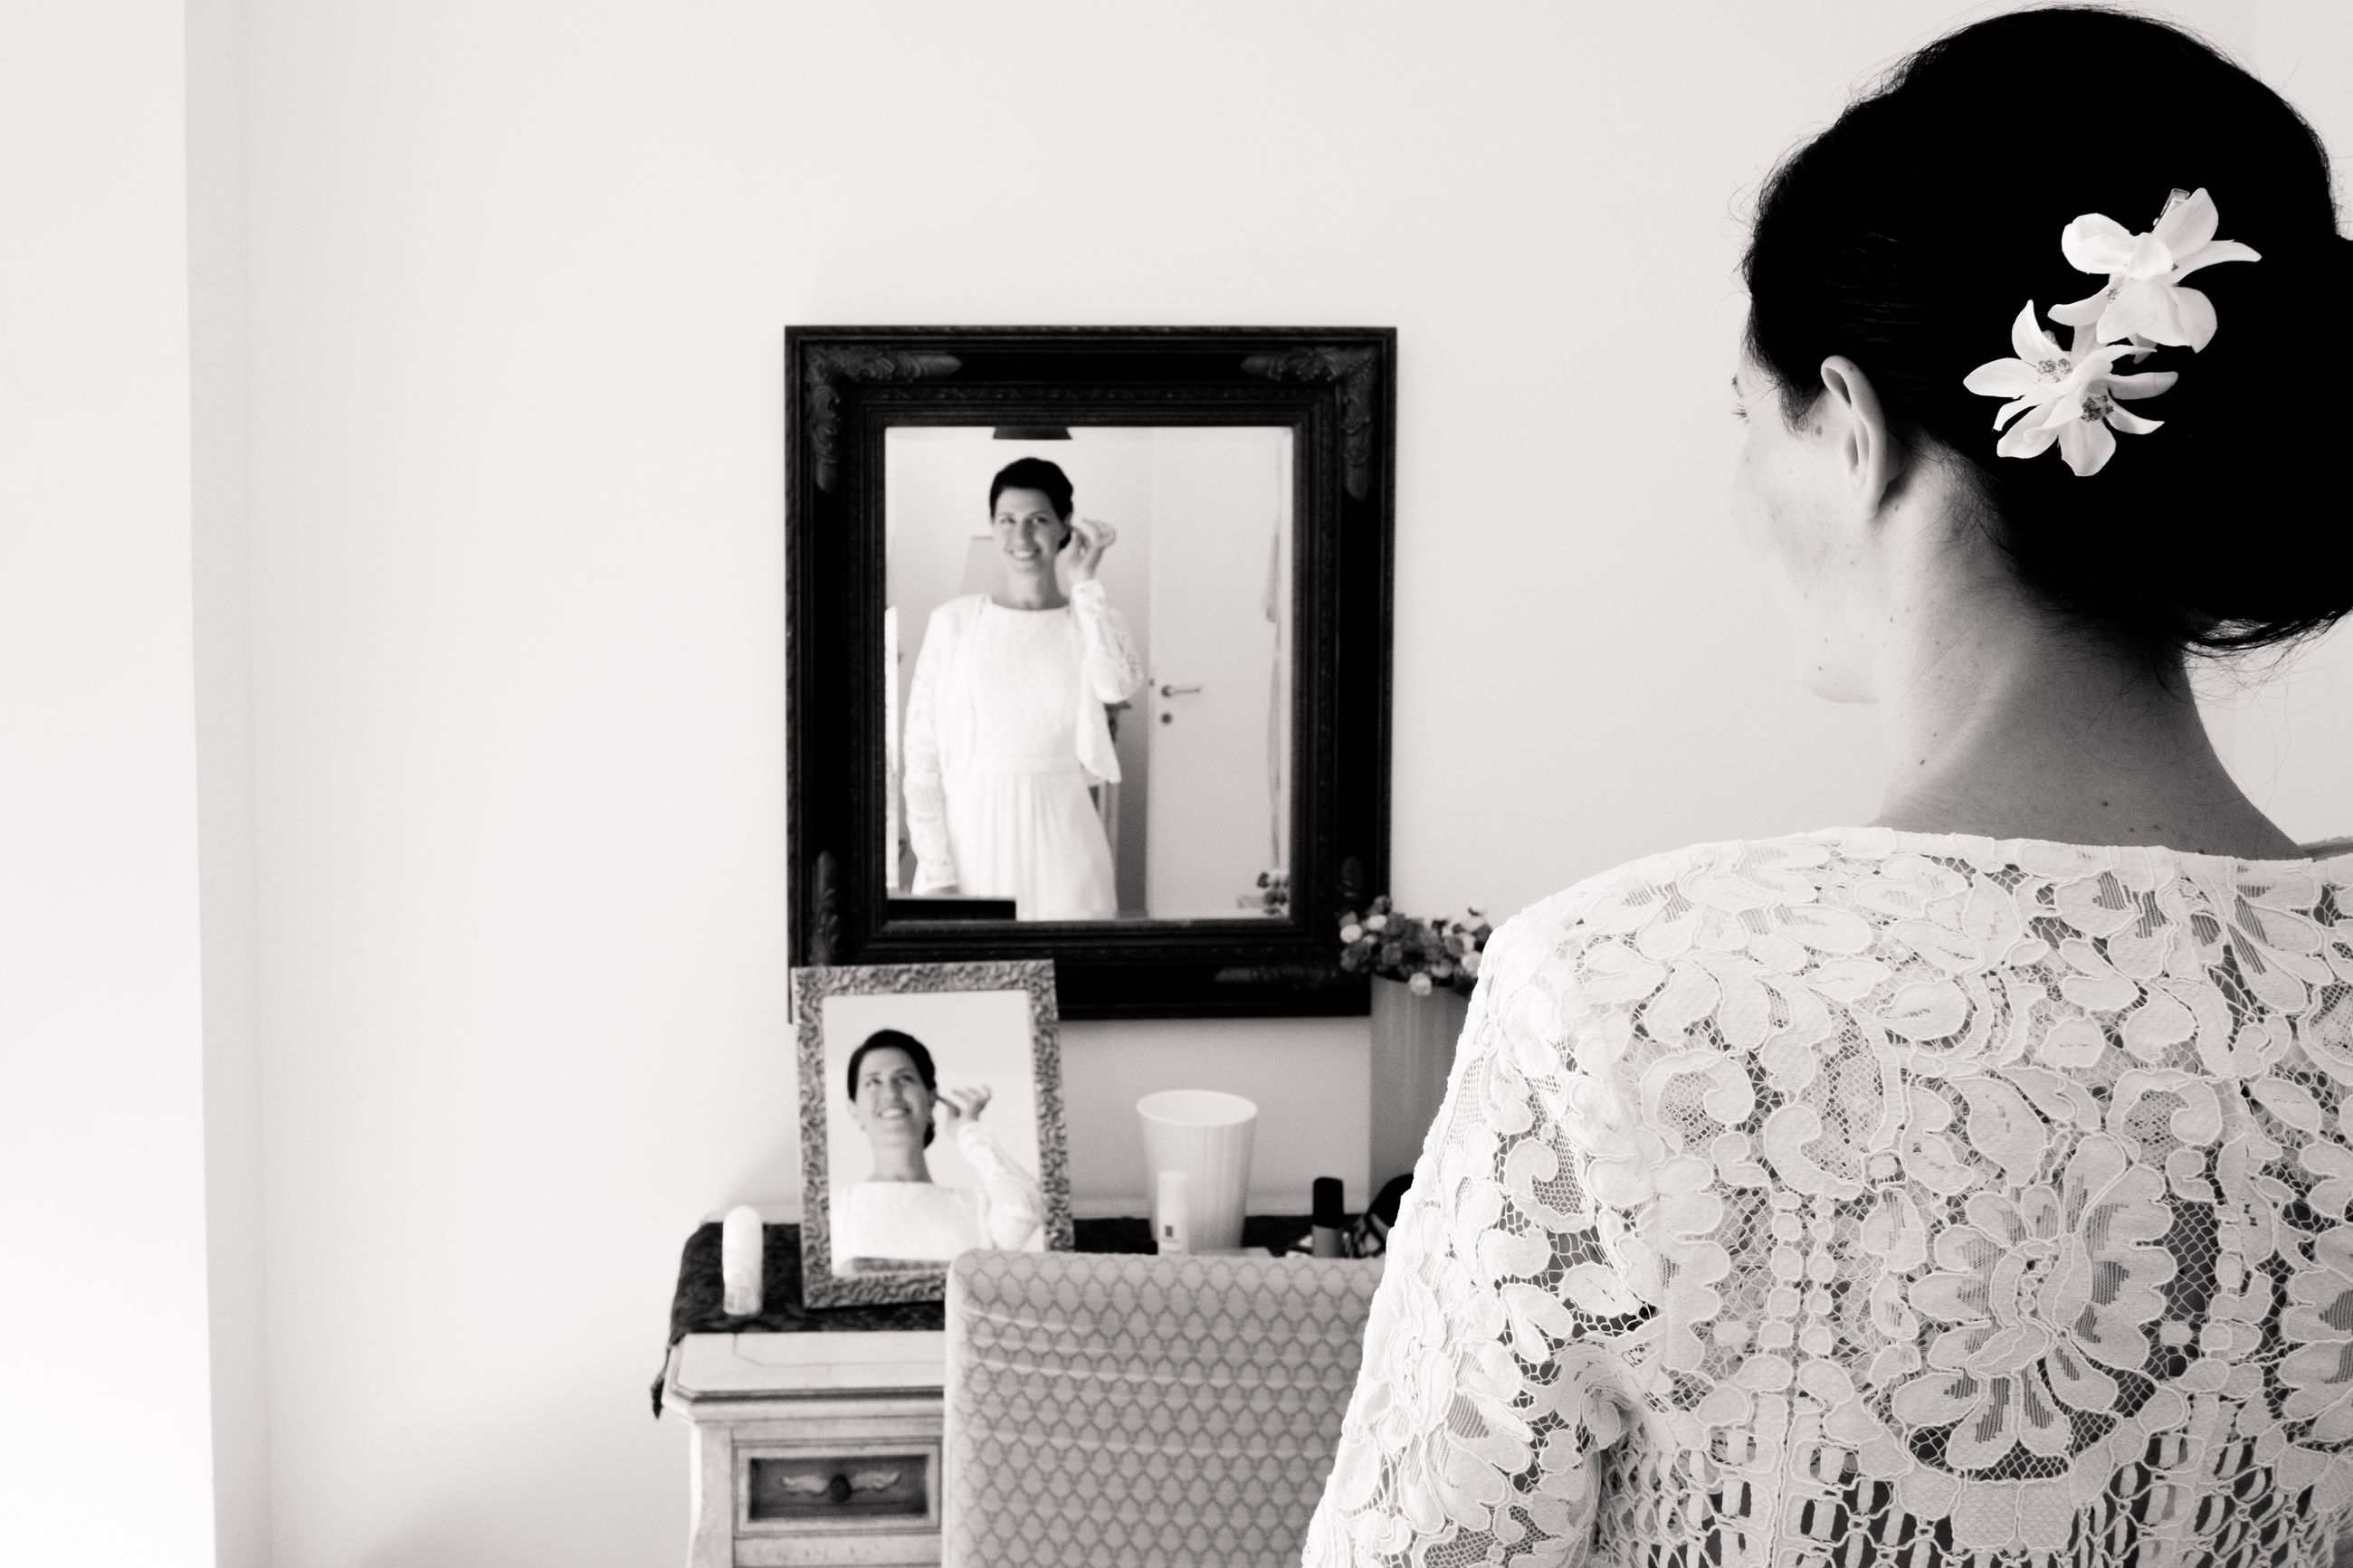 mirror, real people, women, indoors, lifestyles, reflection, one person, adult, rear view, home interior, leisure activity, young adult, wedding, standing, frame, looking, young women, domestic room, bride